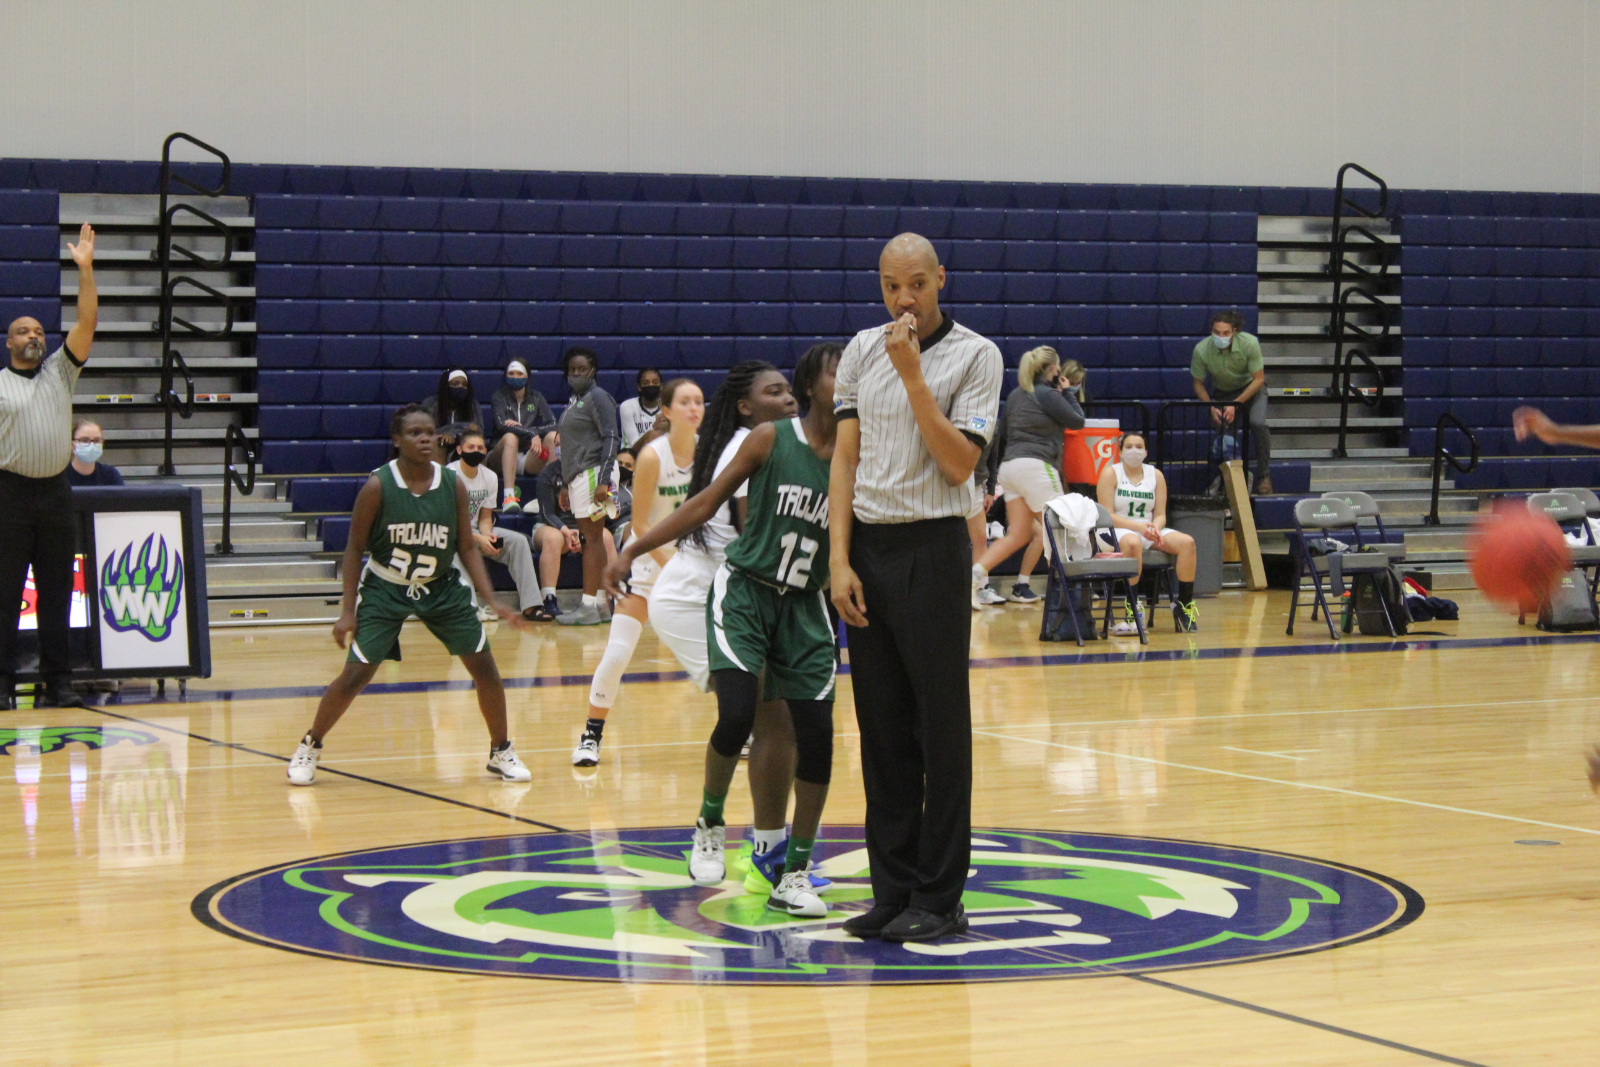 Girls Junior Varsity Basketball vs Windermere